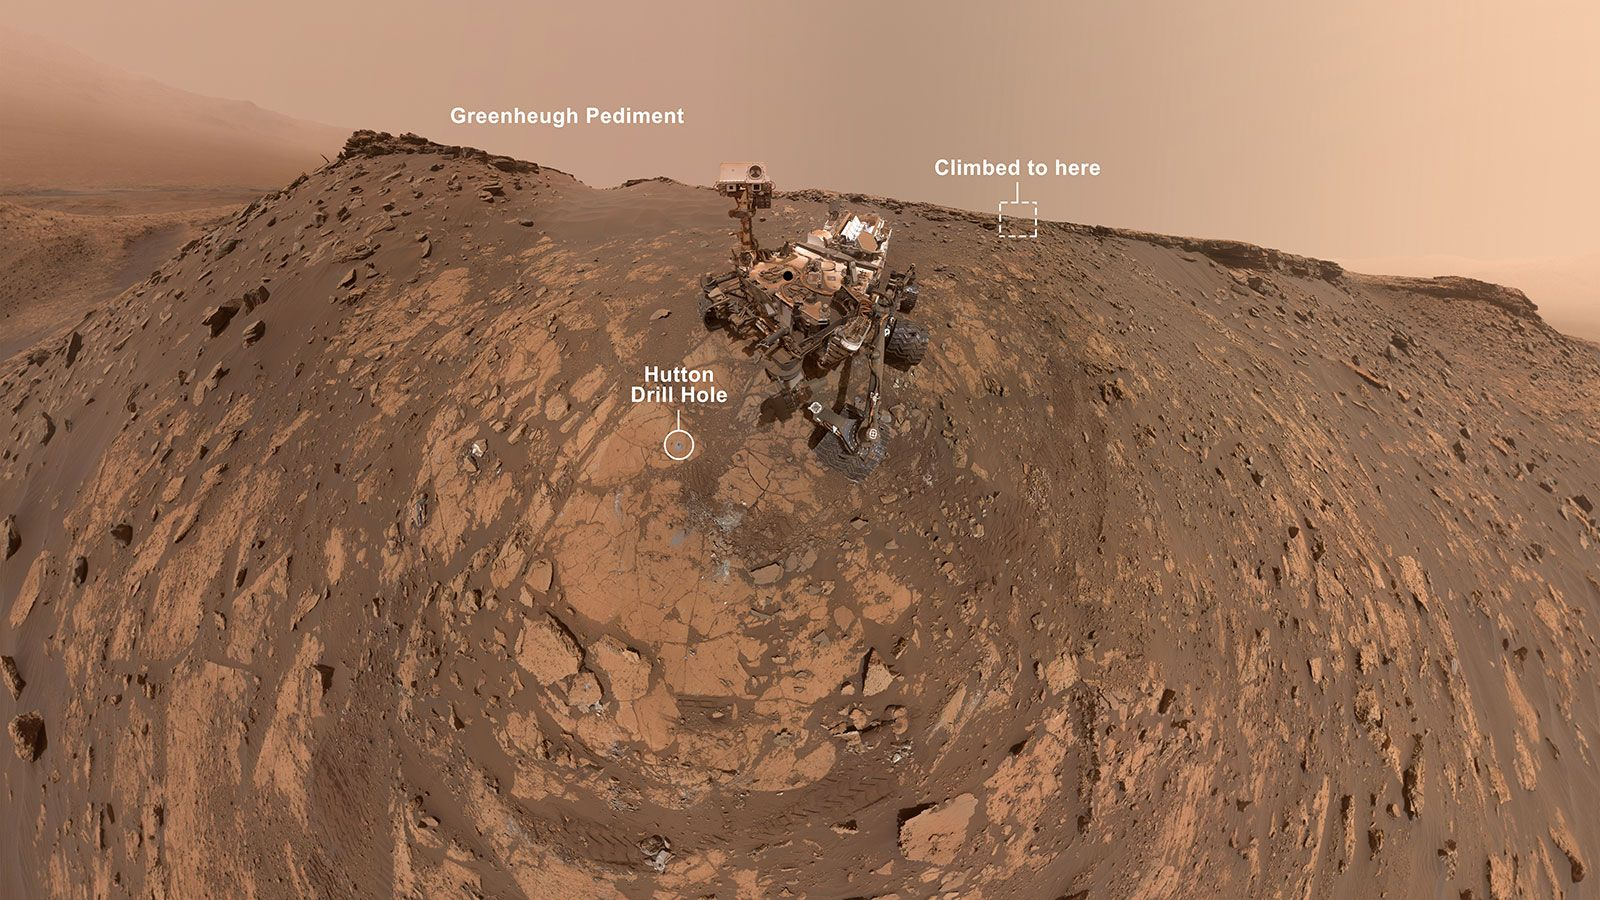 Nasa S Curiosity Mars Rover Takes A New Selfie Before Record Climb In 2020